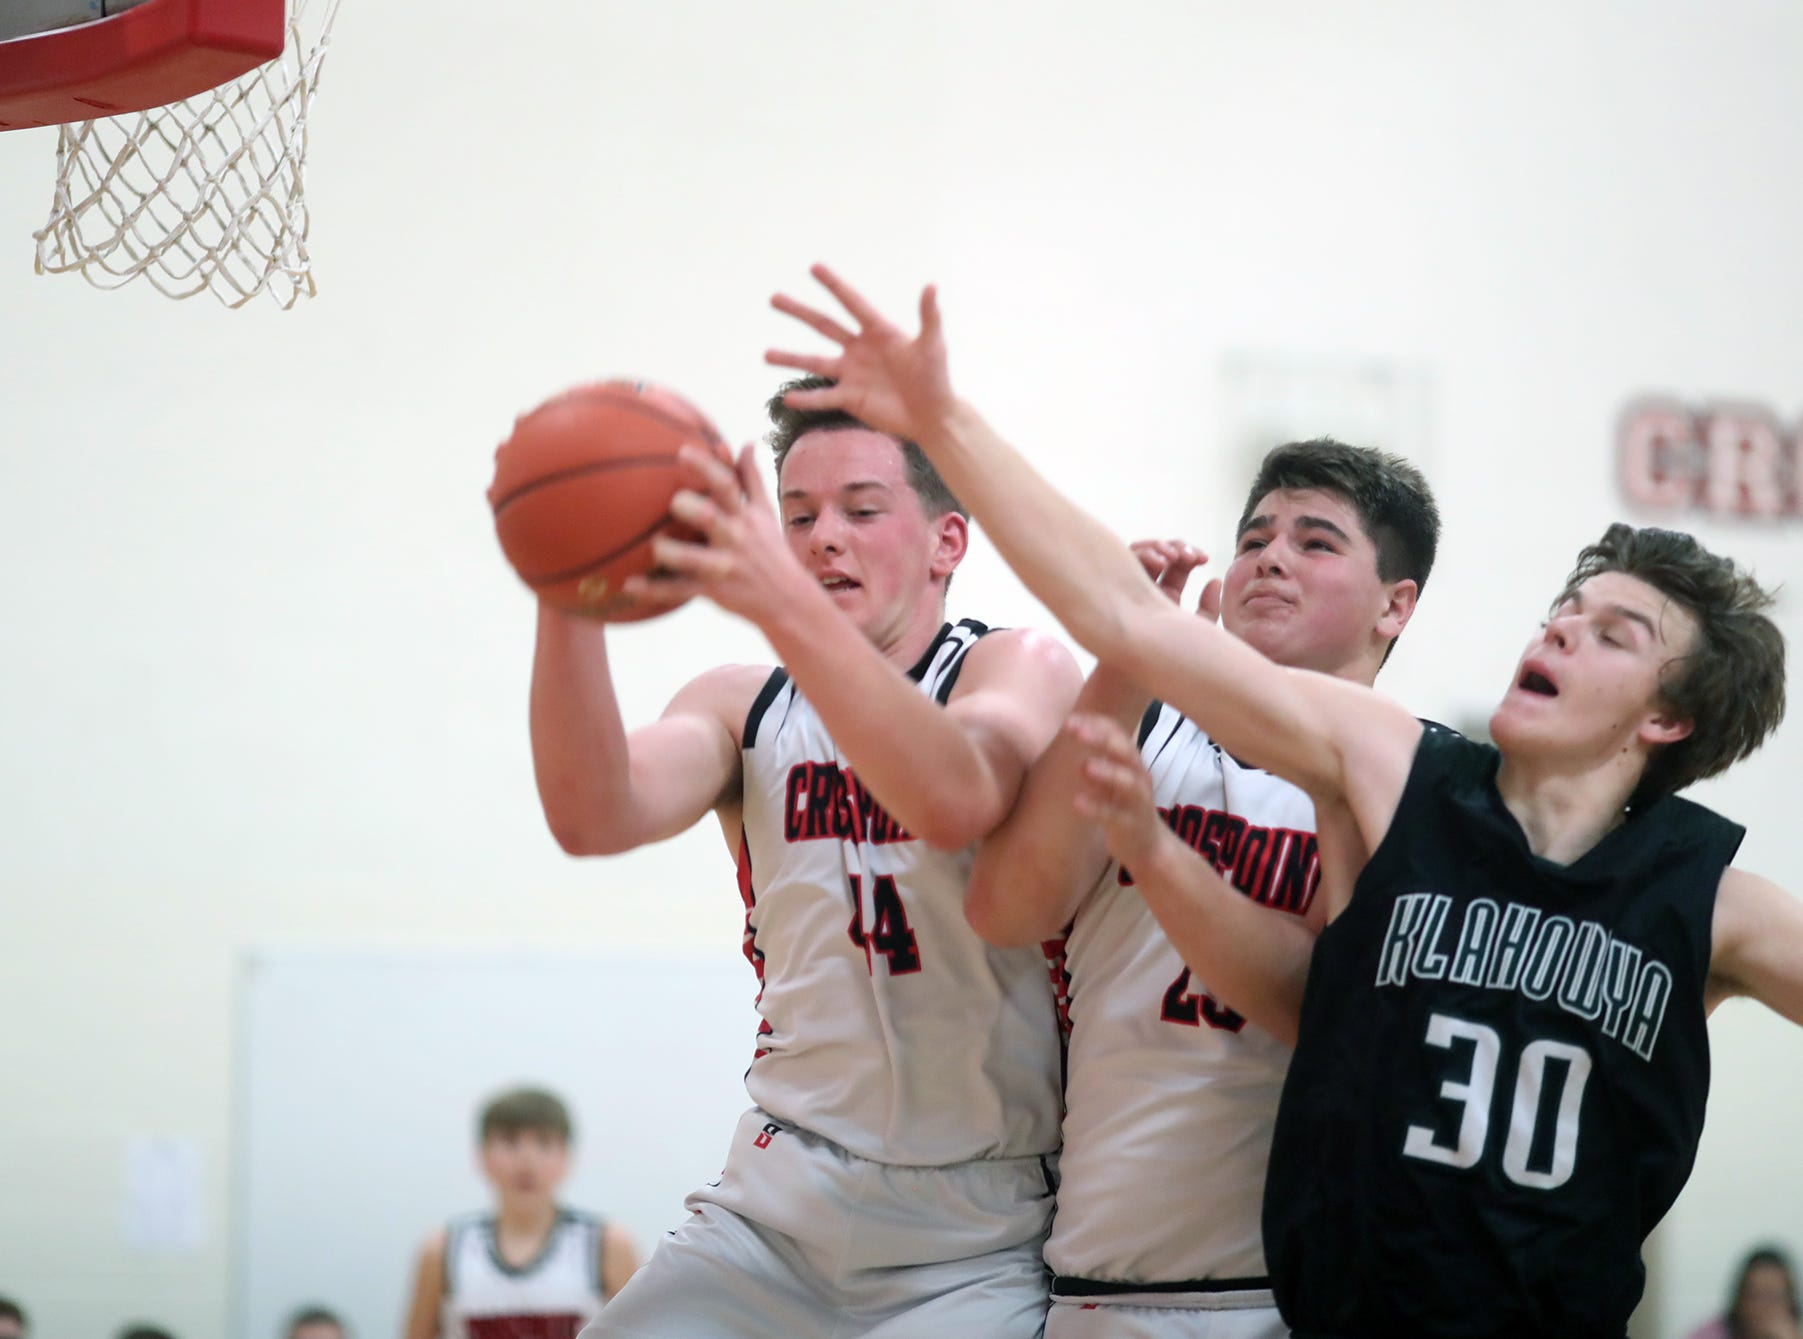 The Crosspoint boys basketball team played Klahowya at Crosspoint on Friday, December, 4, 2019.